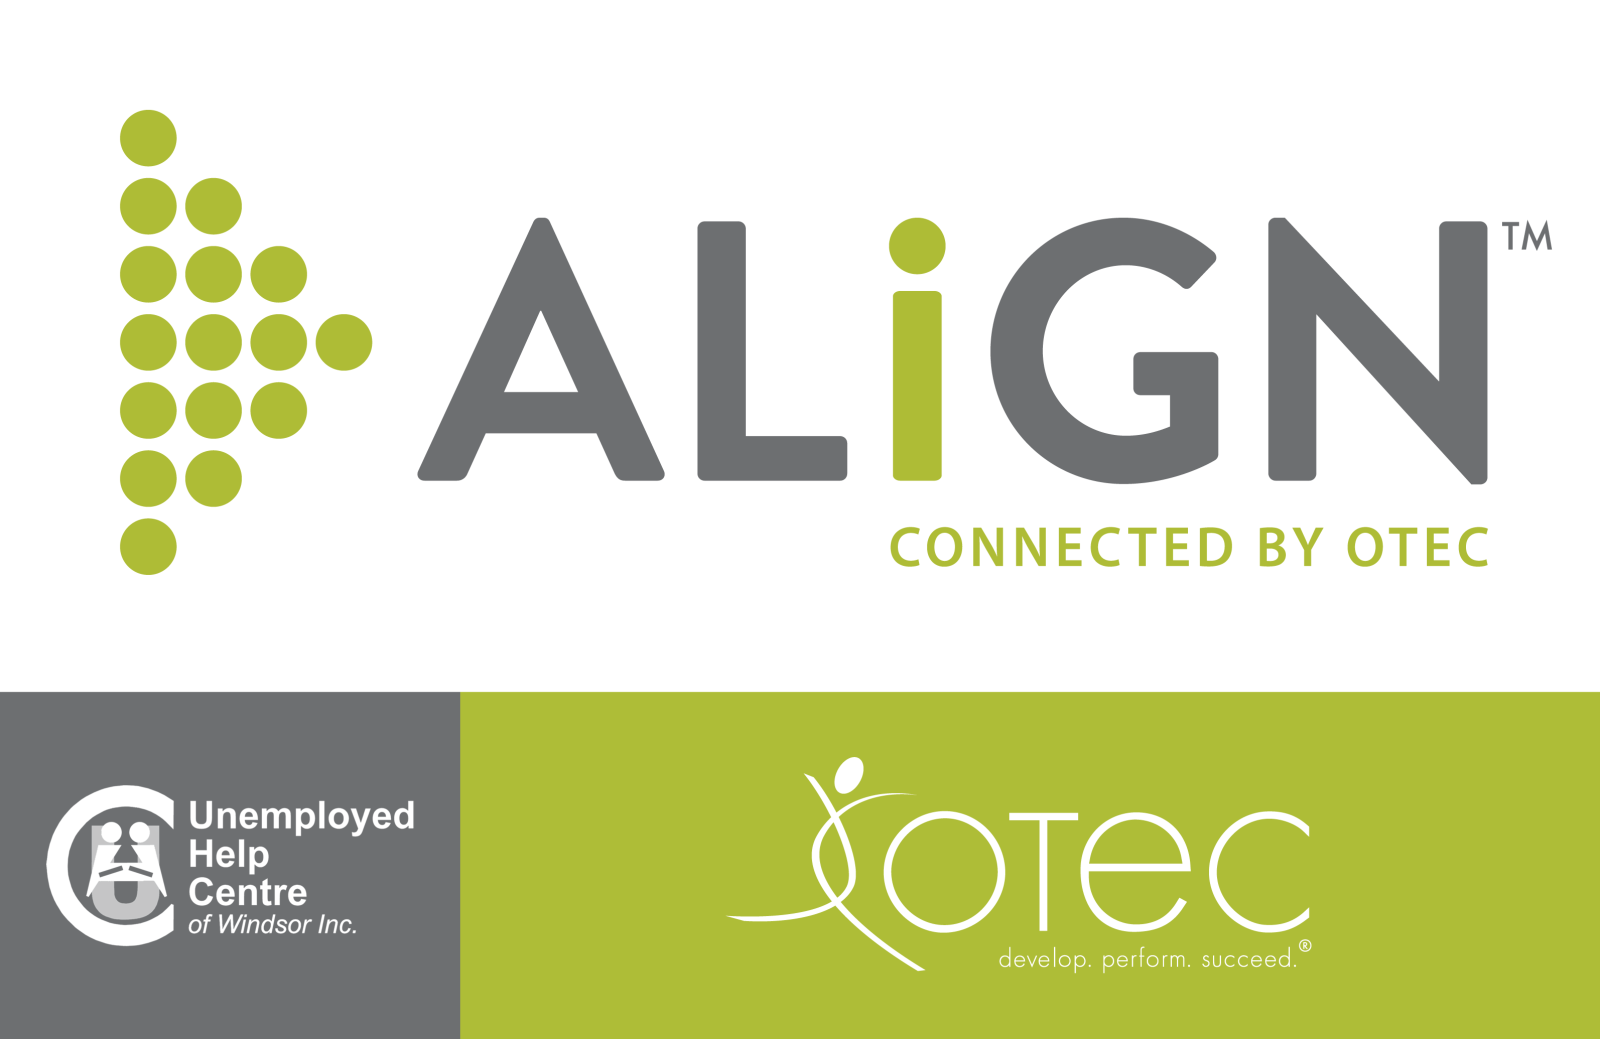 ALiGN Network - OTEC and Unemployed Help Centre of Windsor Inc.